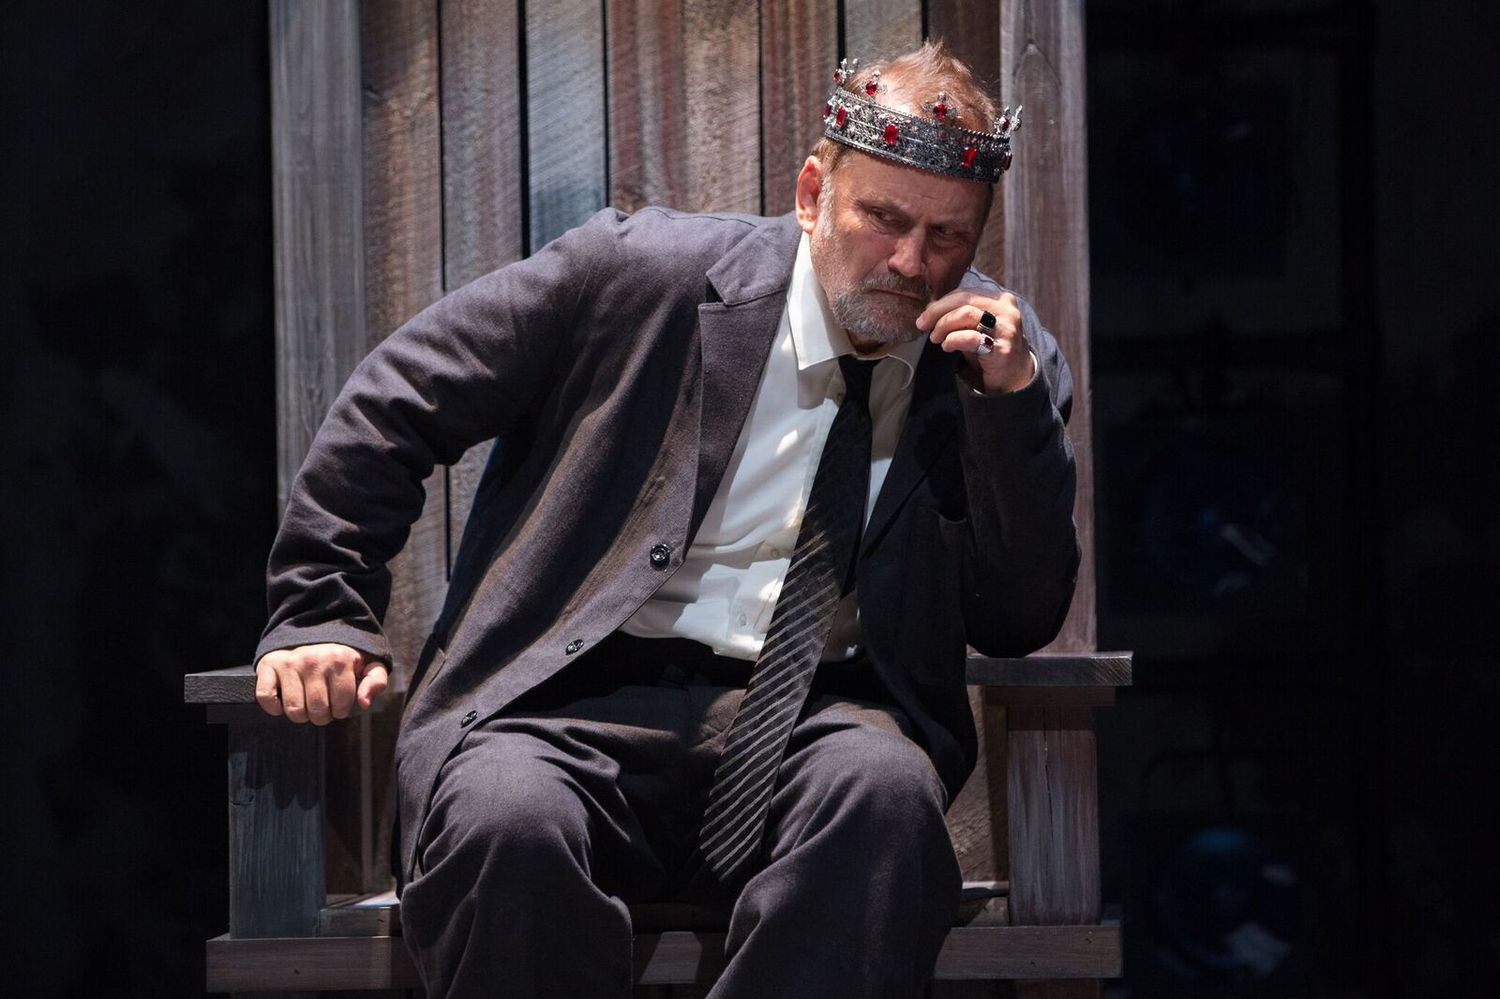 BWW Review: Thought-Provoking and Stunning KING JOHN at Folger Theatre